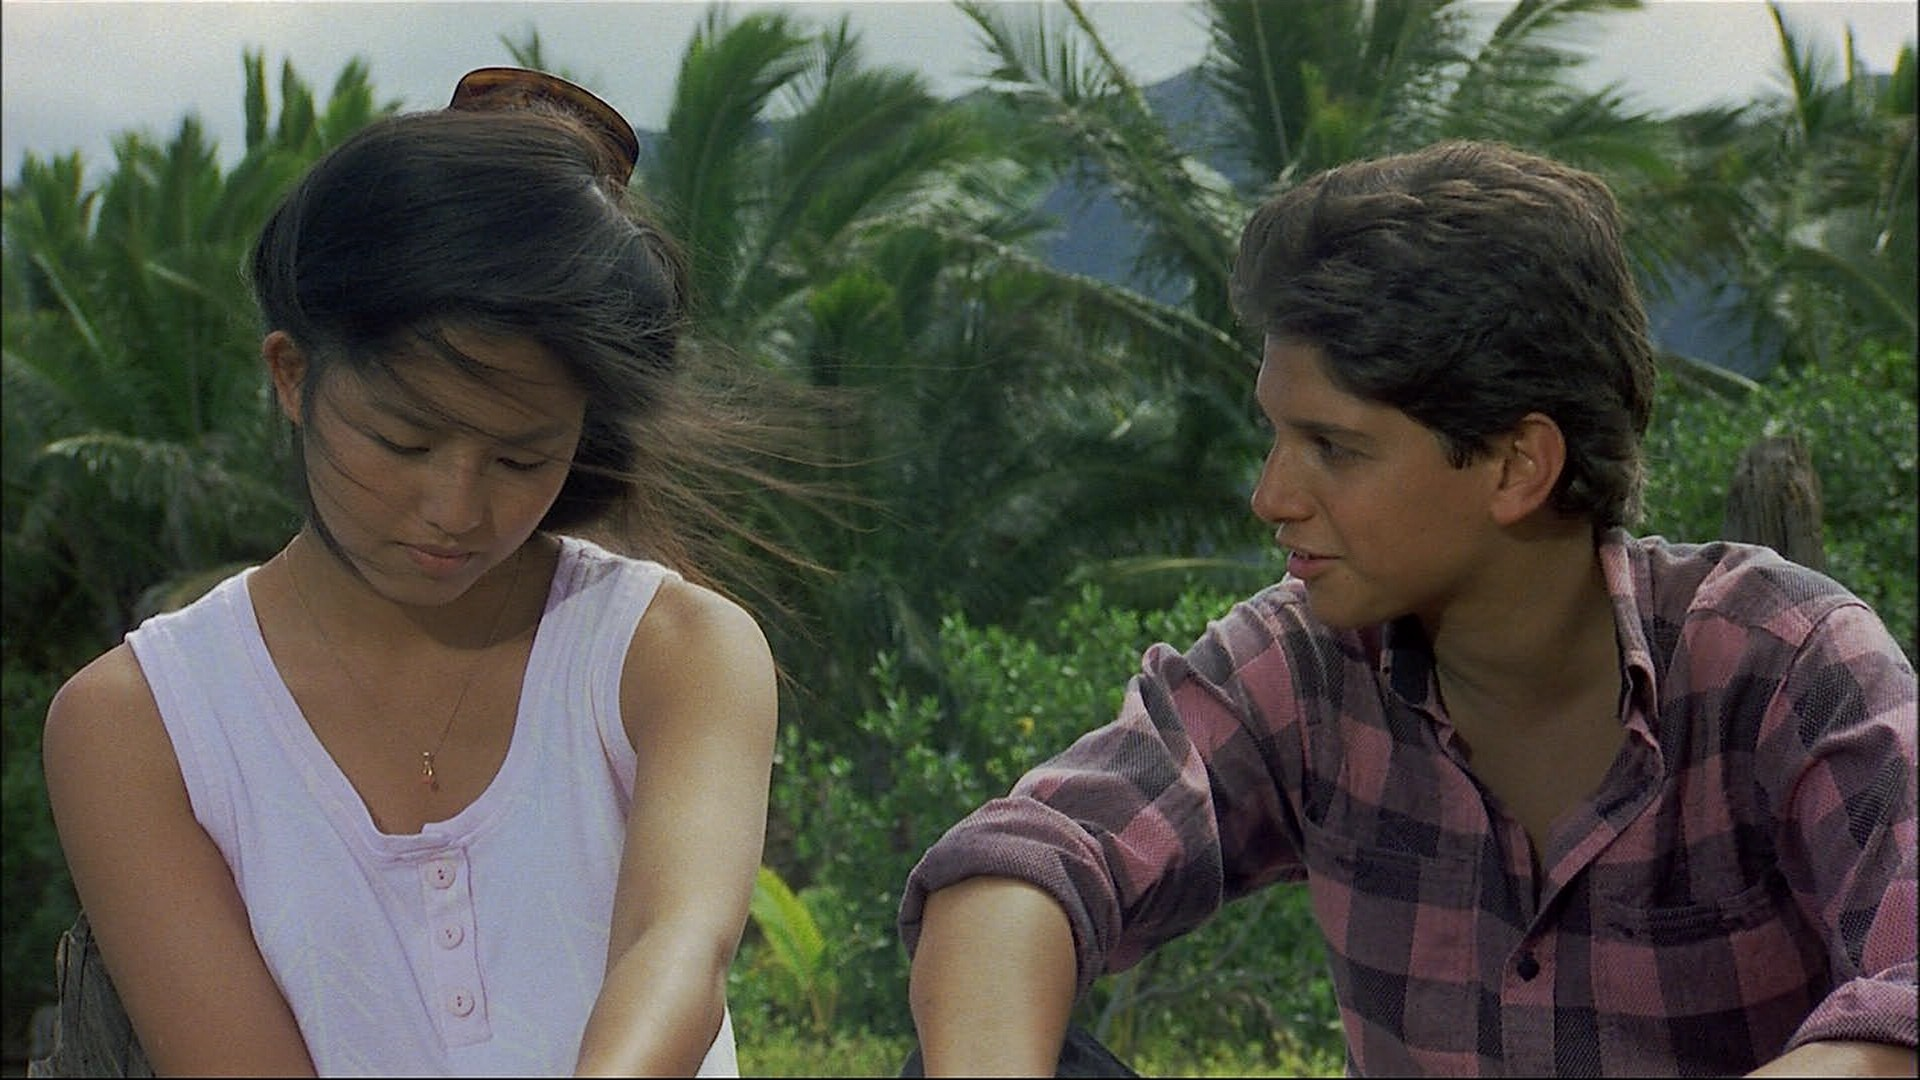 Ralph Macchio images Karate Kid II HD wallpaper and background photos (31677407)